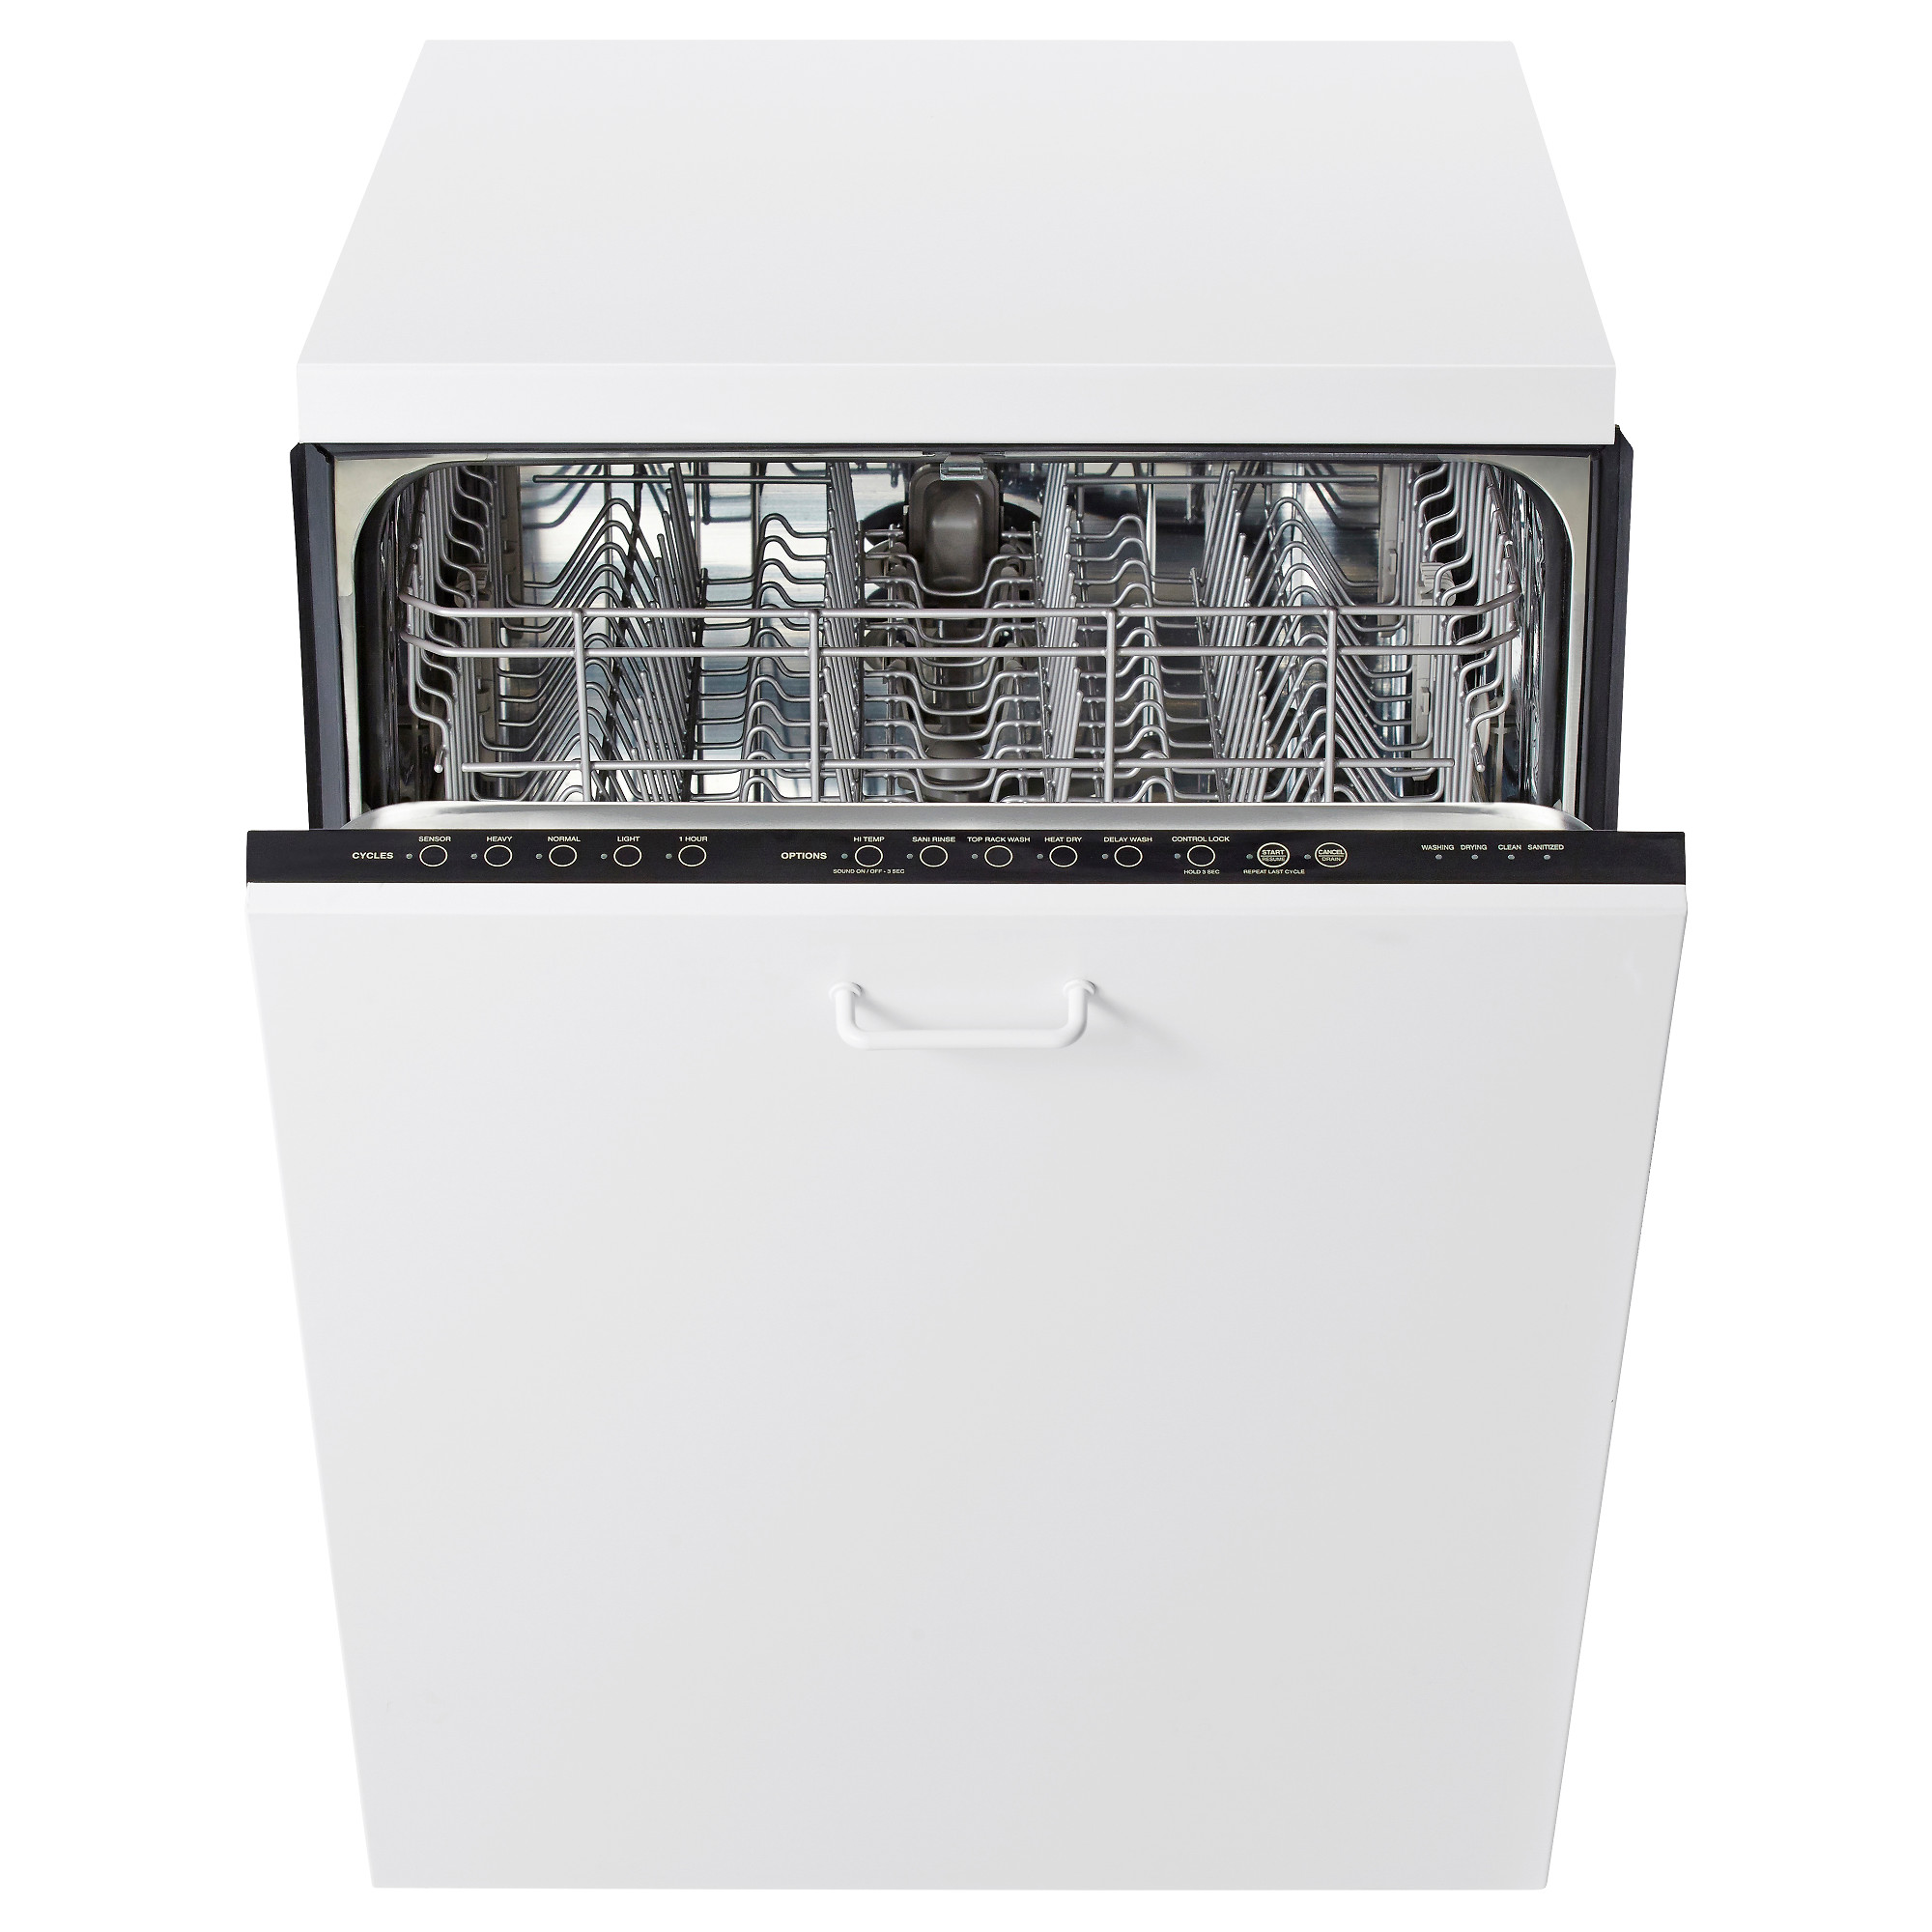 Dishwasher Drawers Vs Standard Dishwashers Ikea